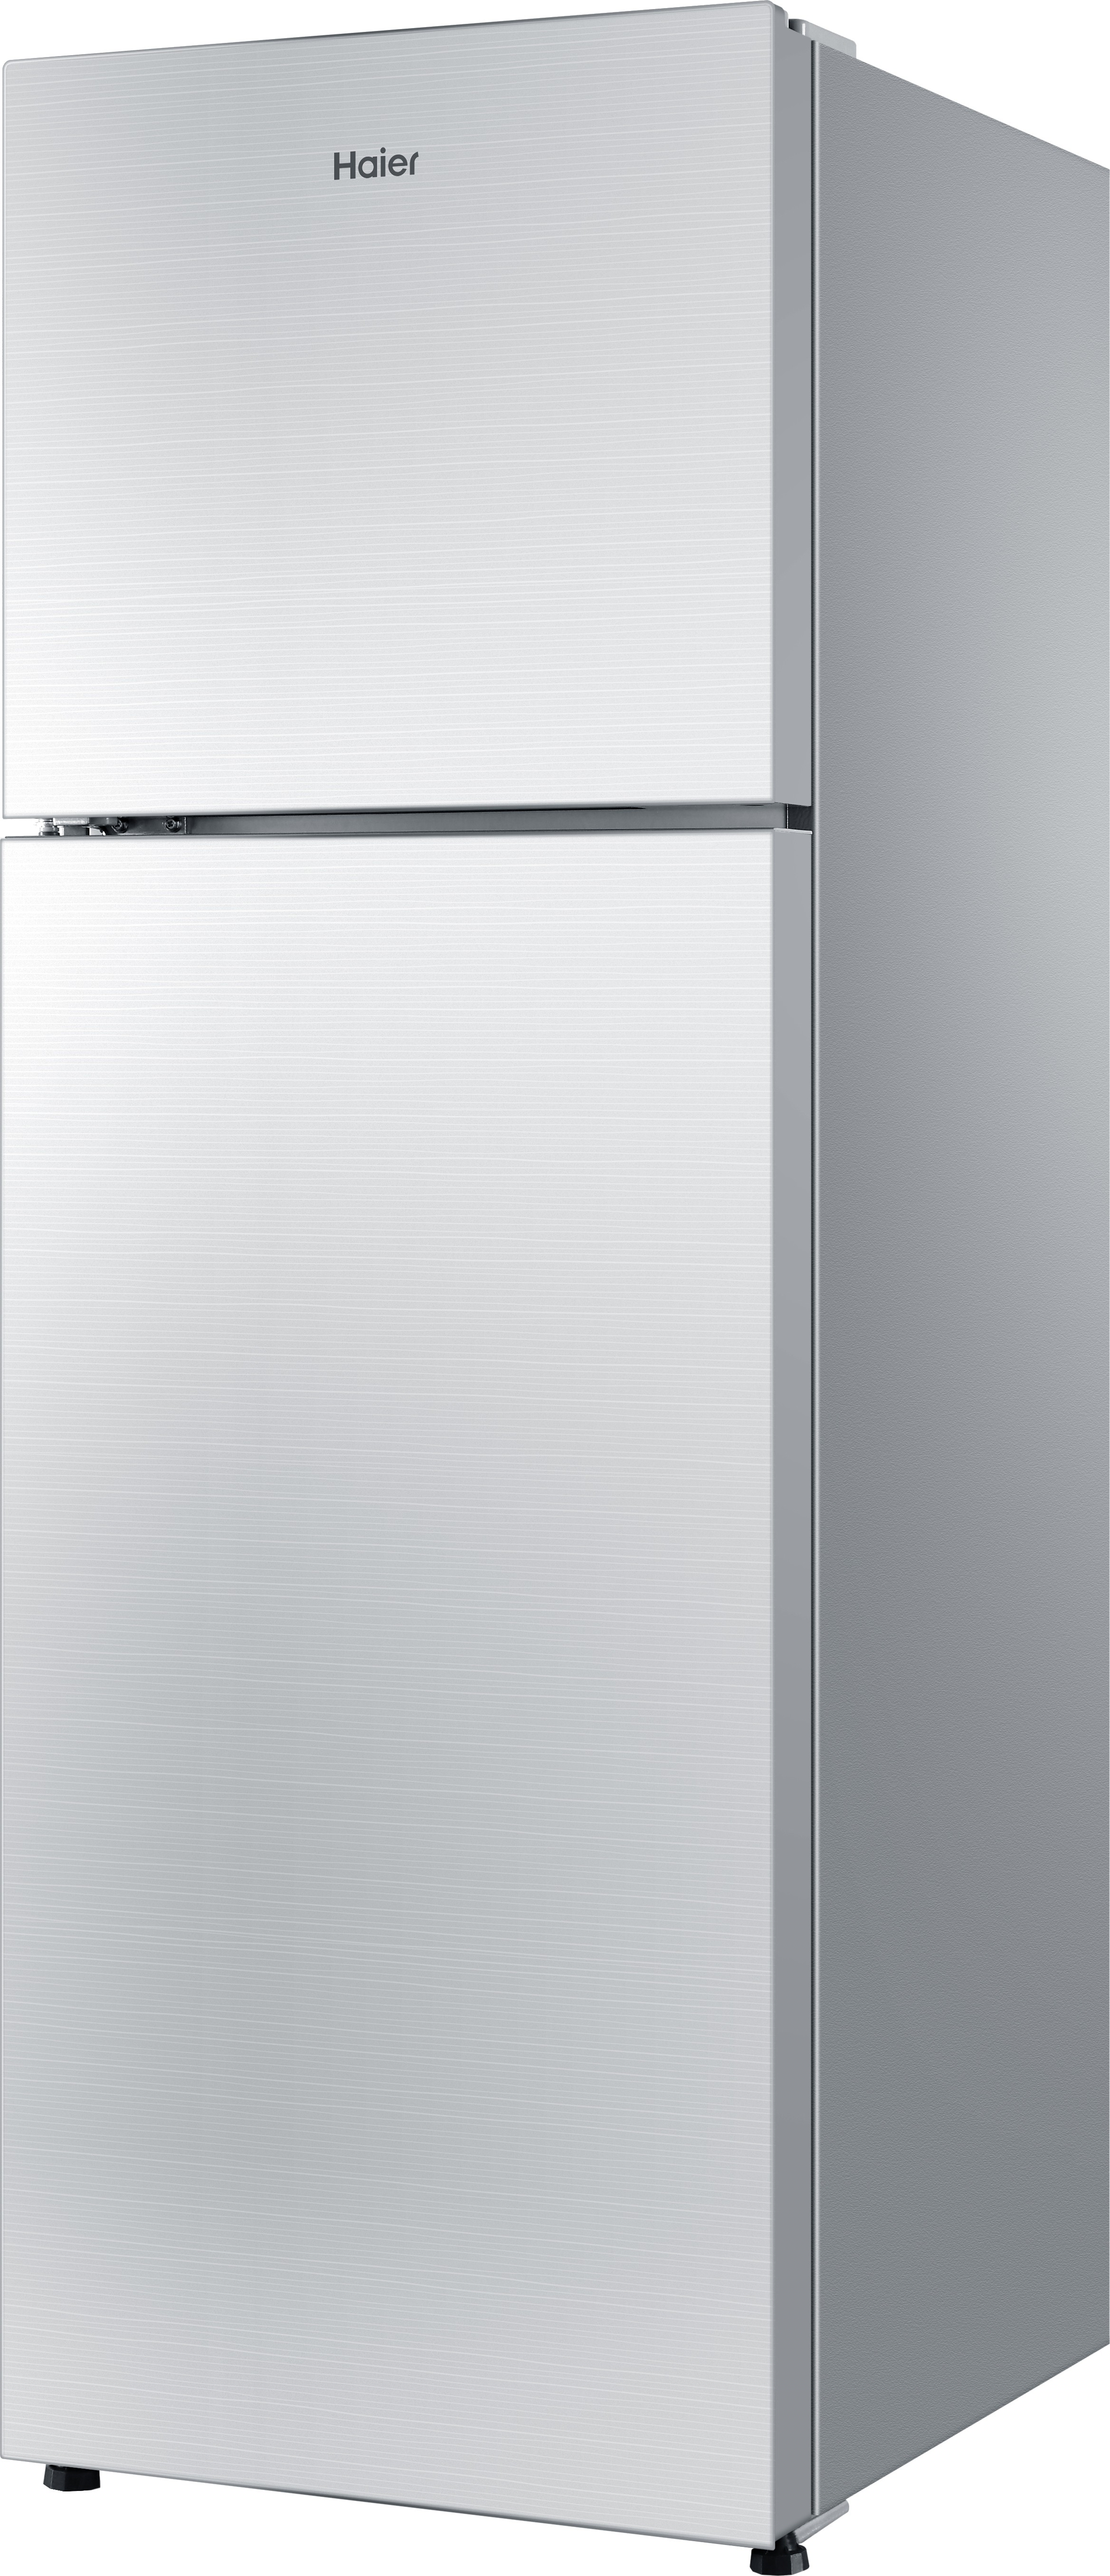 View Haier 247 L Frost Free Double Door Refrigerator  Price Online